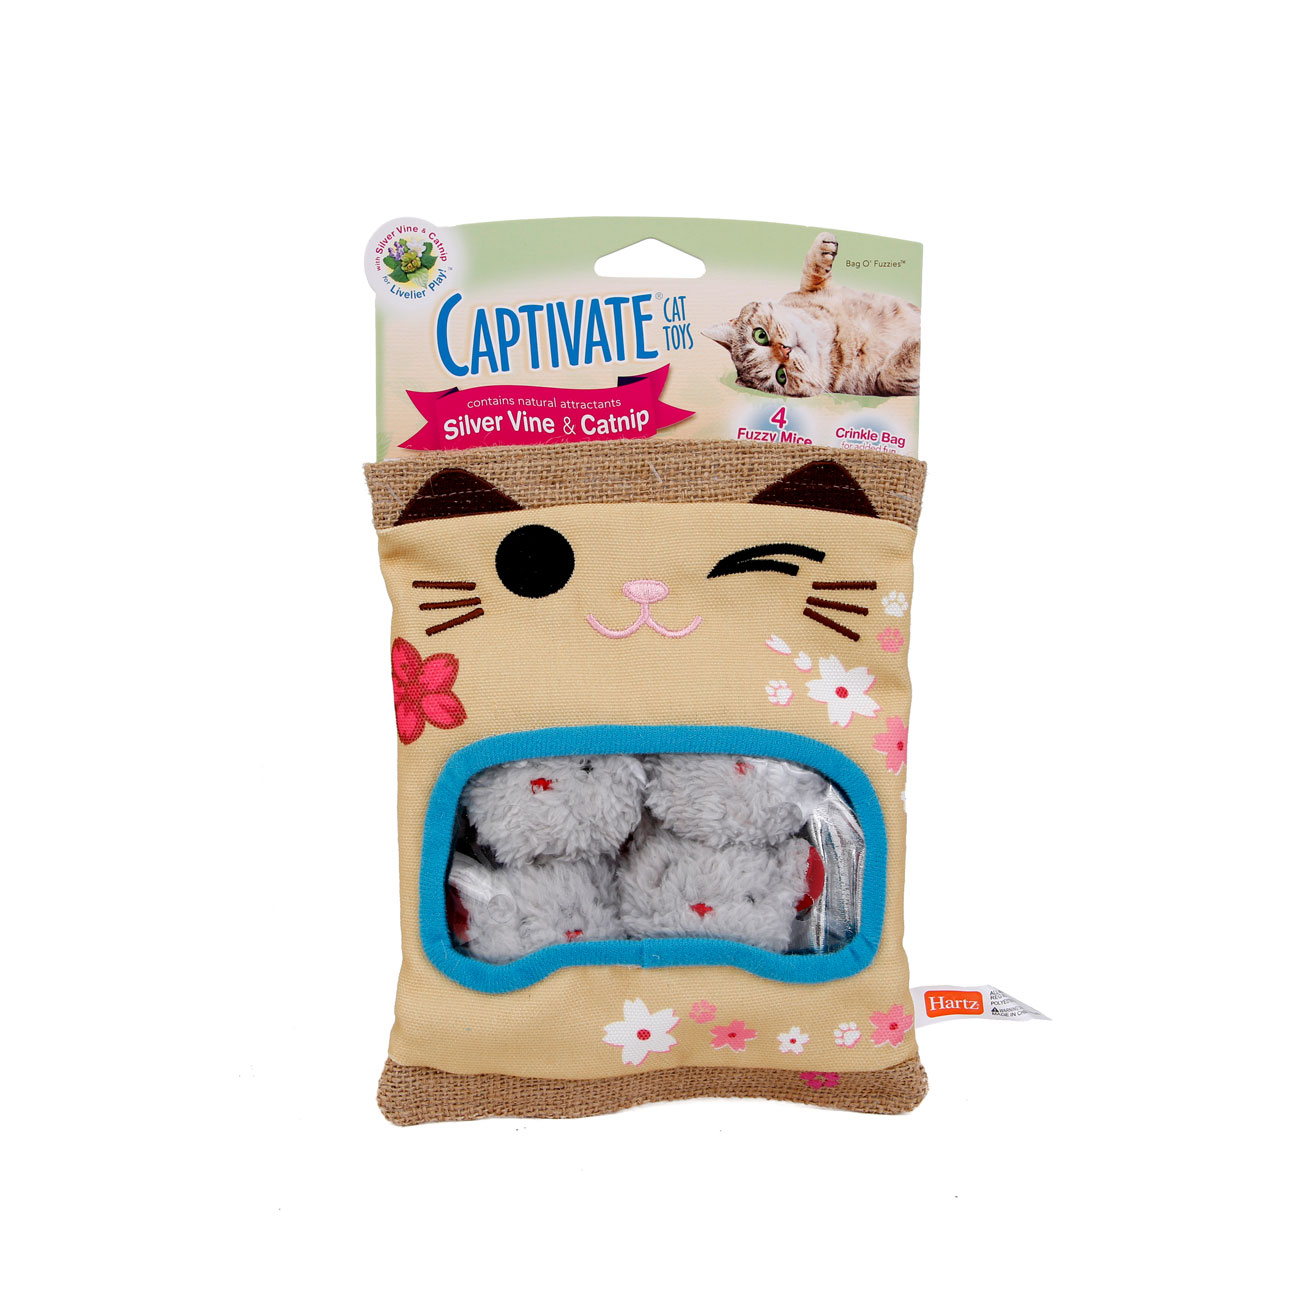 Captivate cat toys with silver vine and catnip.